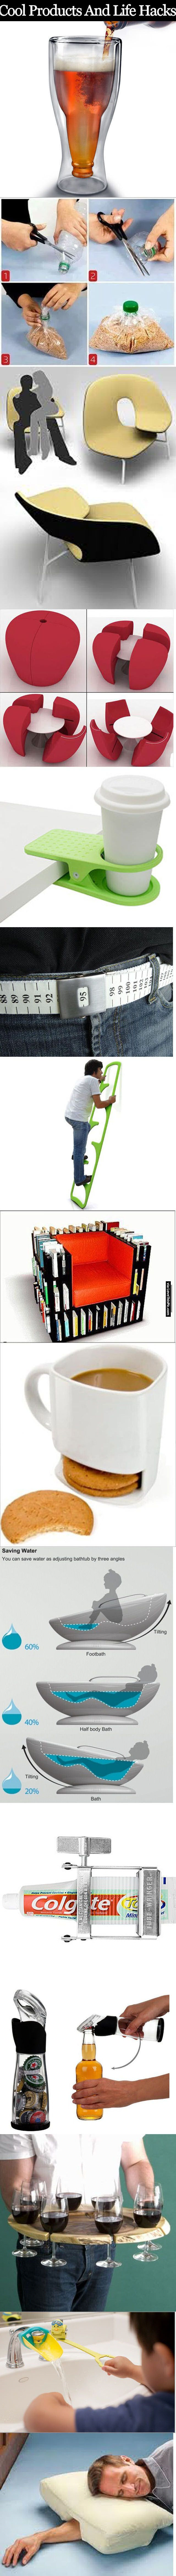 Some Cool Products And Life Hacks cool interesting technology products life hacks life hack tech